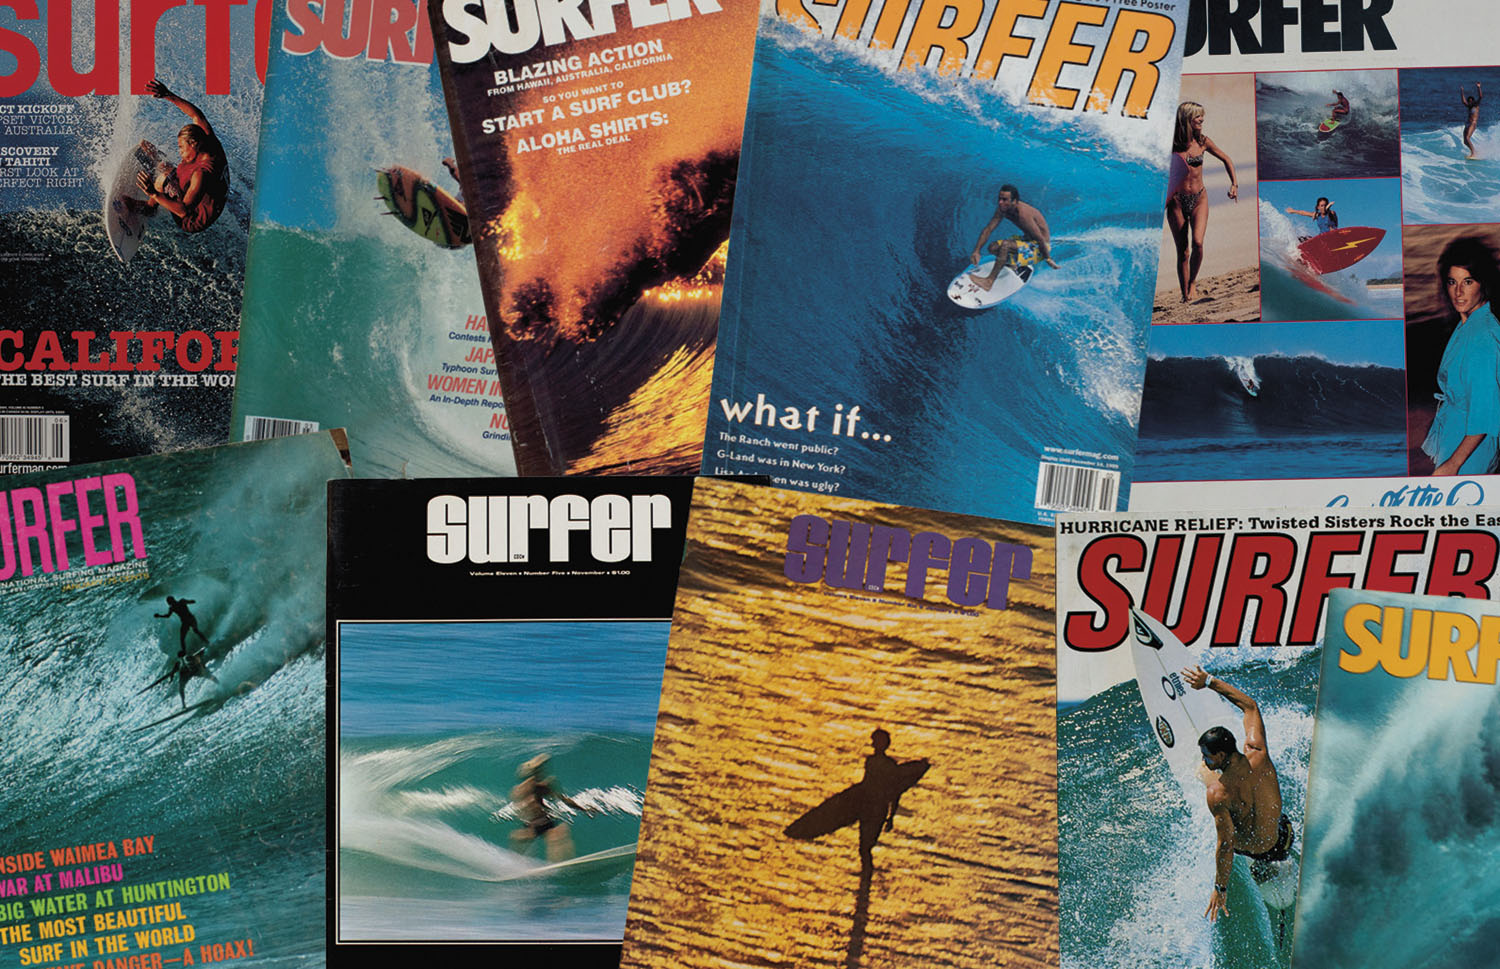 The Lonesome Death of Surfer Magazine (1960 - 2020) - Wavelength Surf Magazine - since 1981